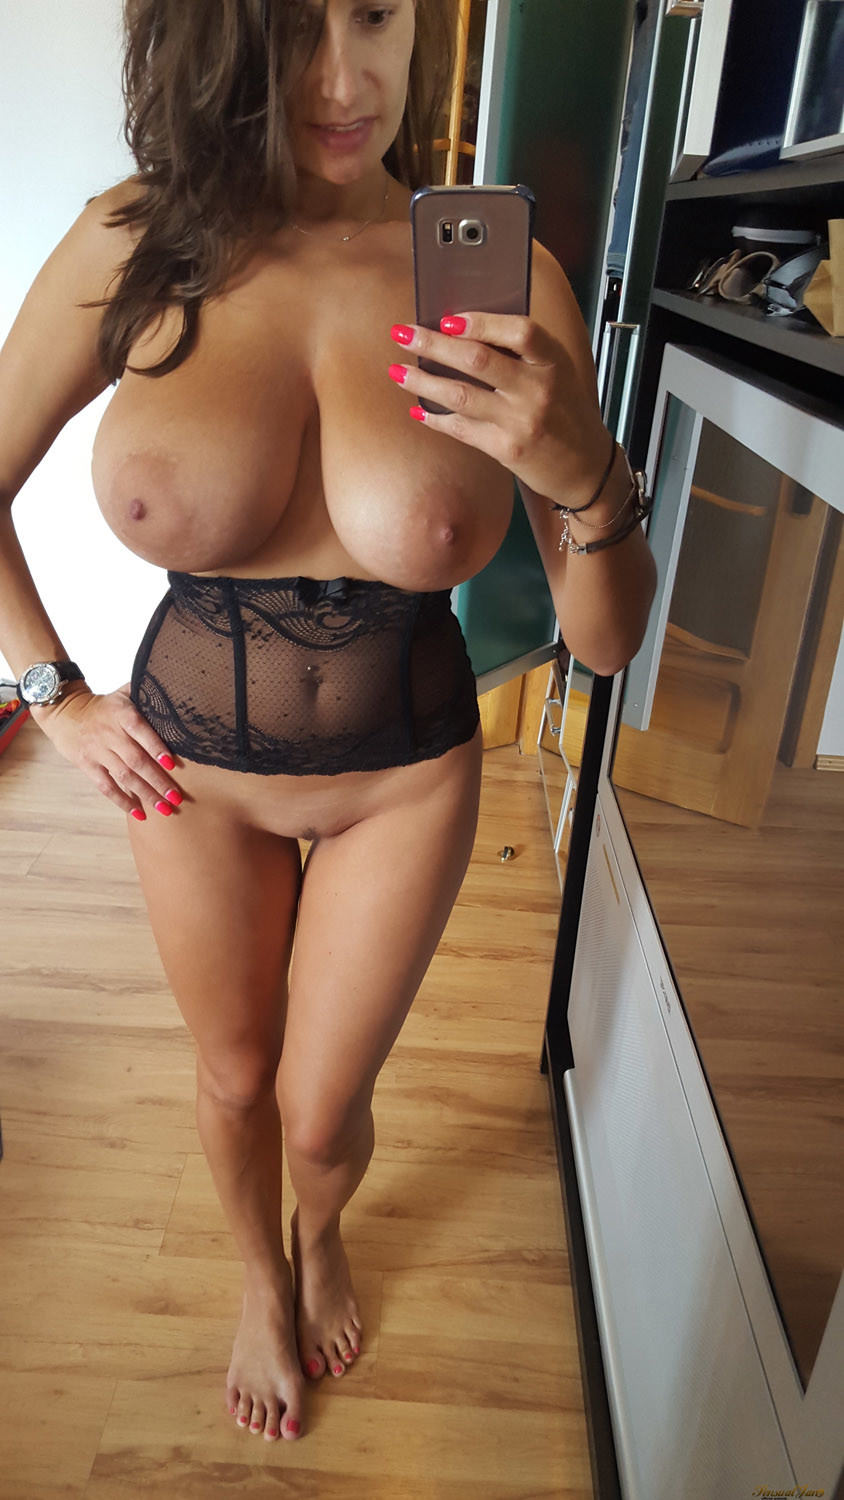 blonde whore seduces guy with her mini skirt Lingerie Bigtits Bigrack Boobs Breasts Brunette Gloves Slut Stunning Hot Sexy